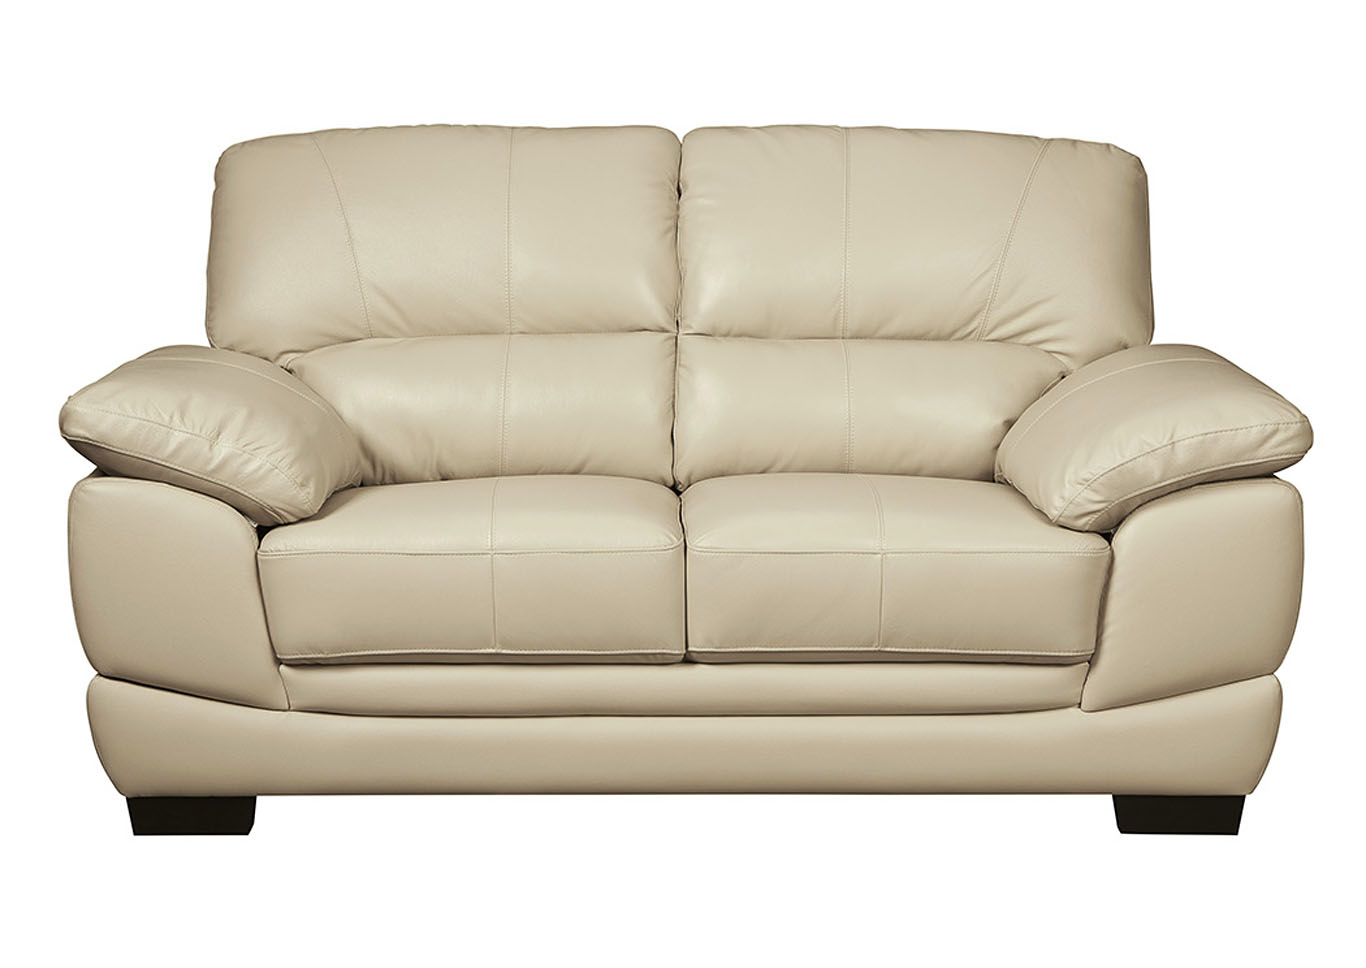 Fontenot Cream Loveseat,Signature Design By Ashley